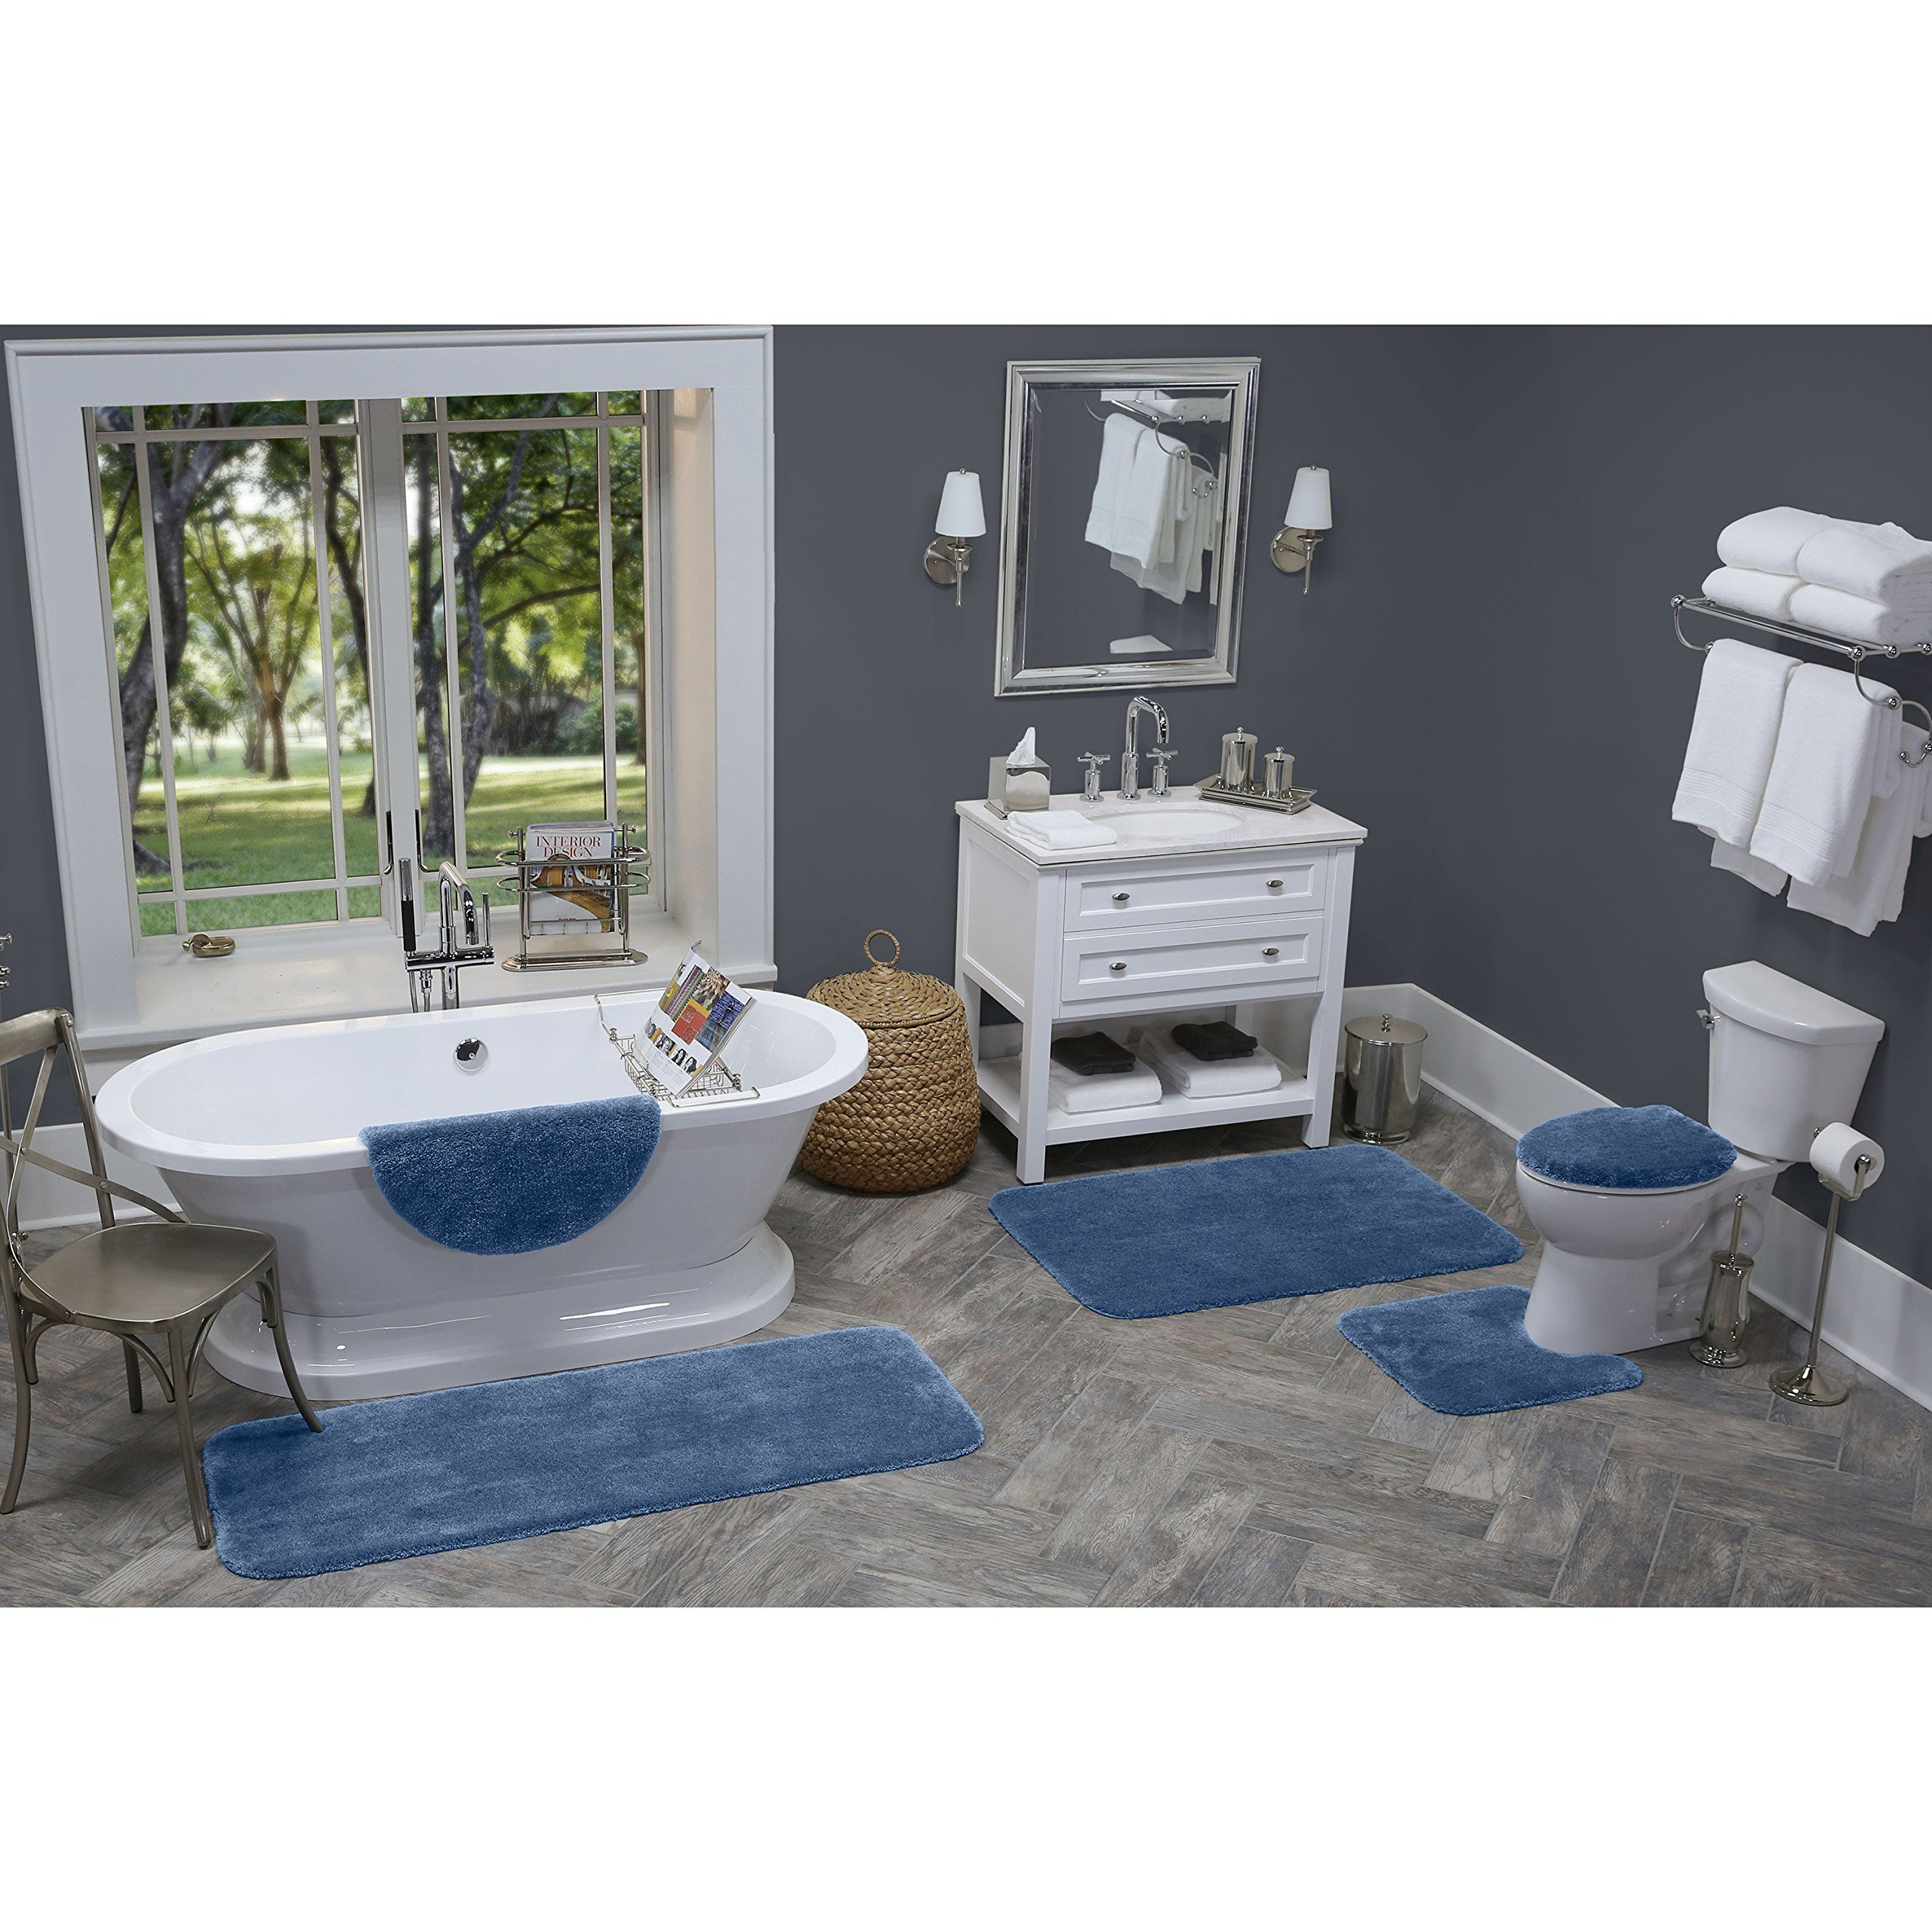 Bathroom Rugs Set Maples Rugs 3 Piece Non Slip Bath Rug And Mats Sets For Kitchen Shower And Toilet Federal Blue White Bathroom Rug Bath Rugs Sets Bath Rug [ 2560 x 2560 Pixel ]